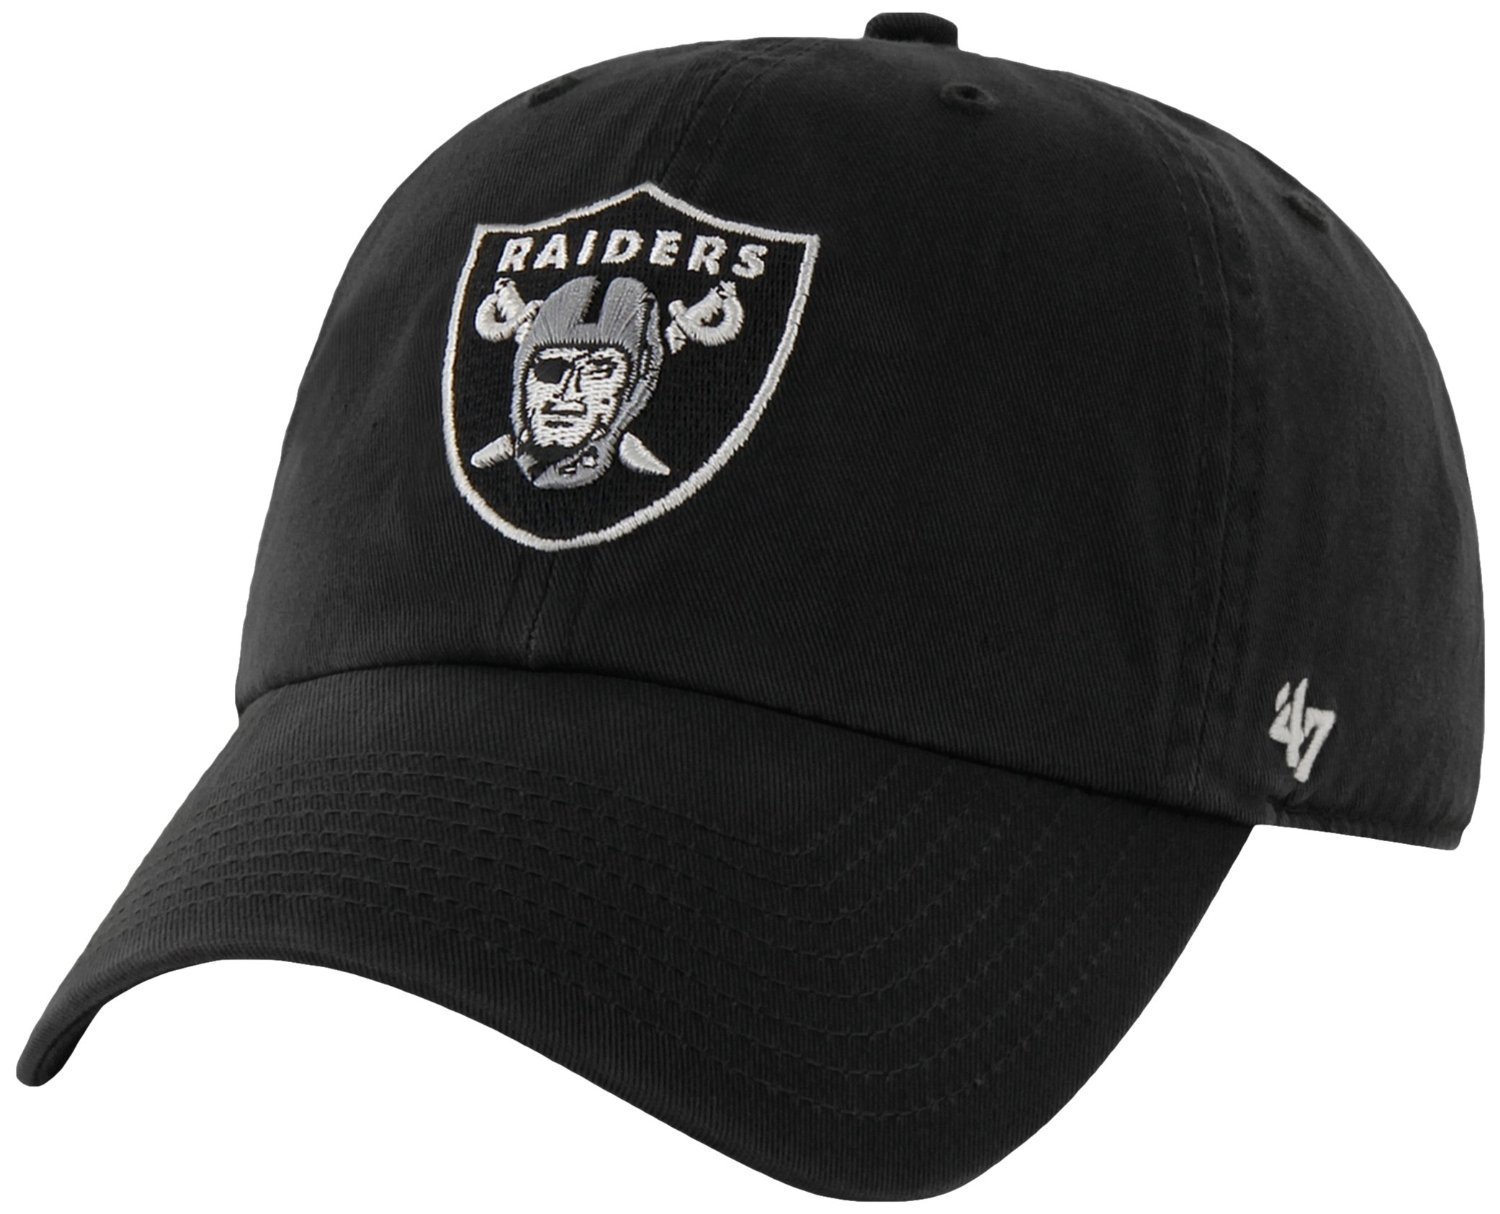 2faf93d05be5fd Amazon.com : NFL Oakland Raiders '47 Brand Black Basic Logo Clean Up Home  Adjustable Hat : Sports & Outdoors